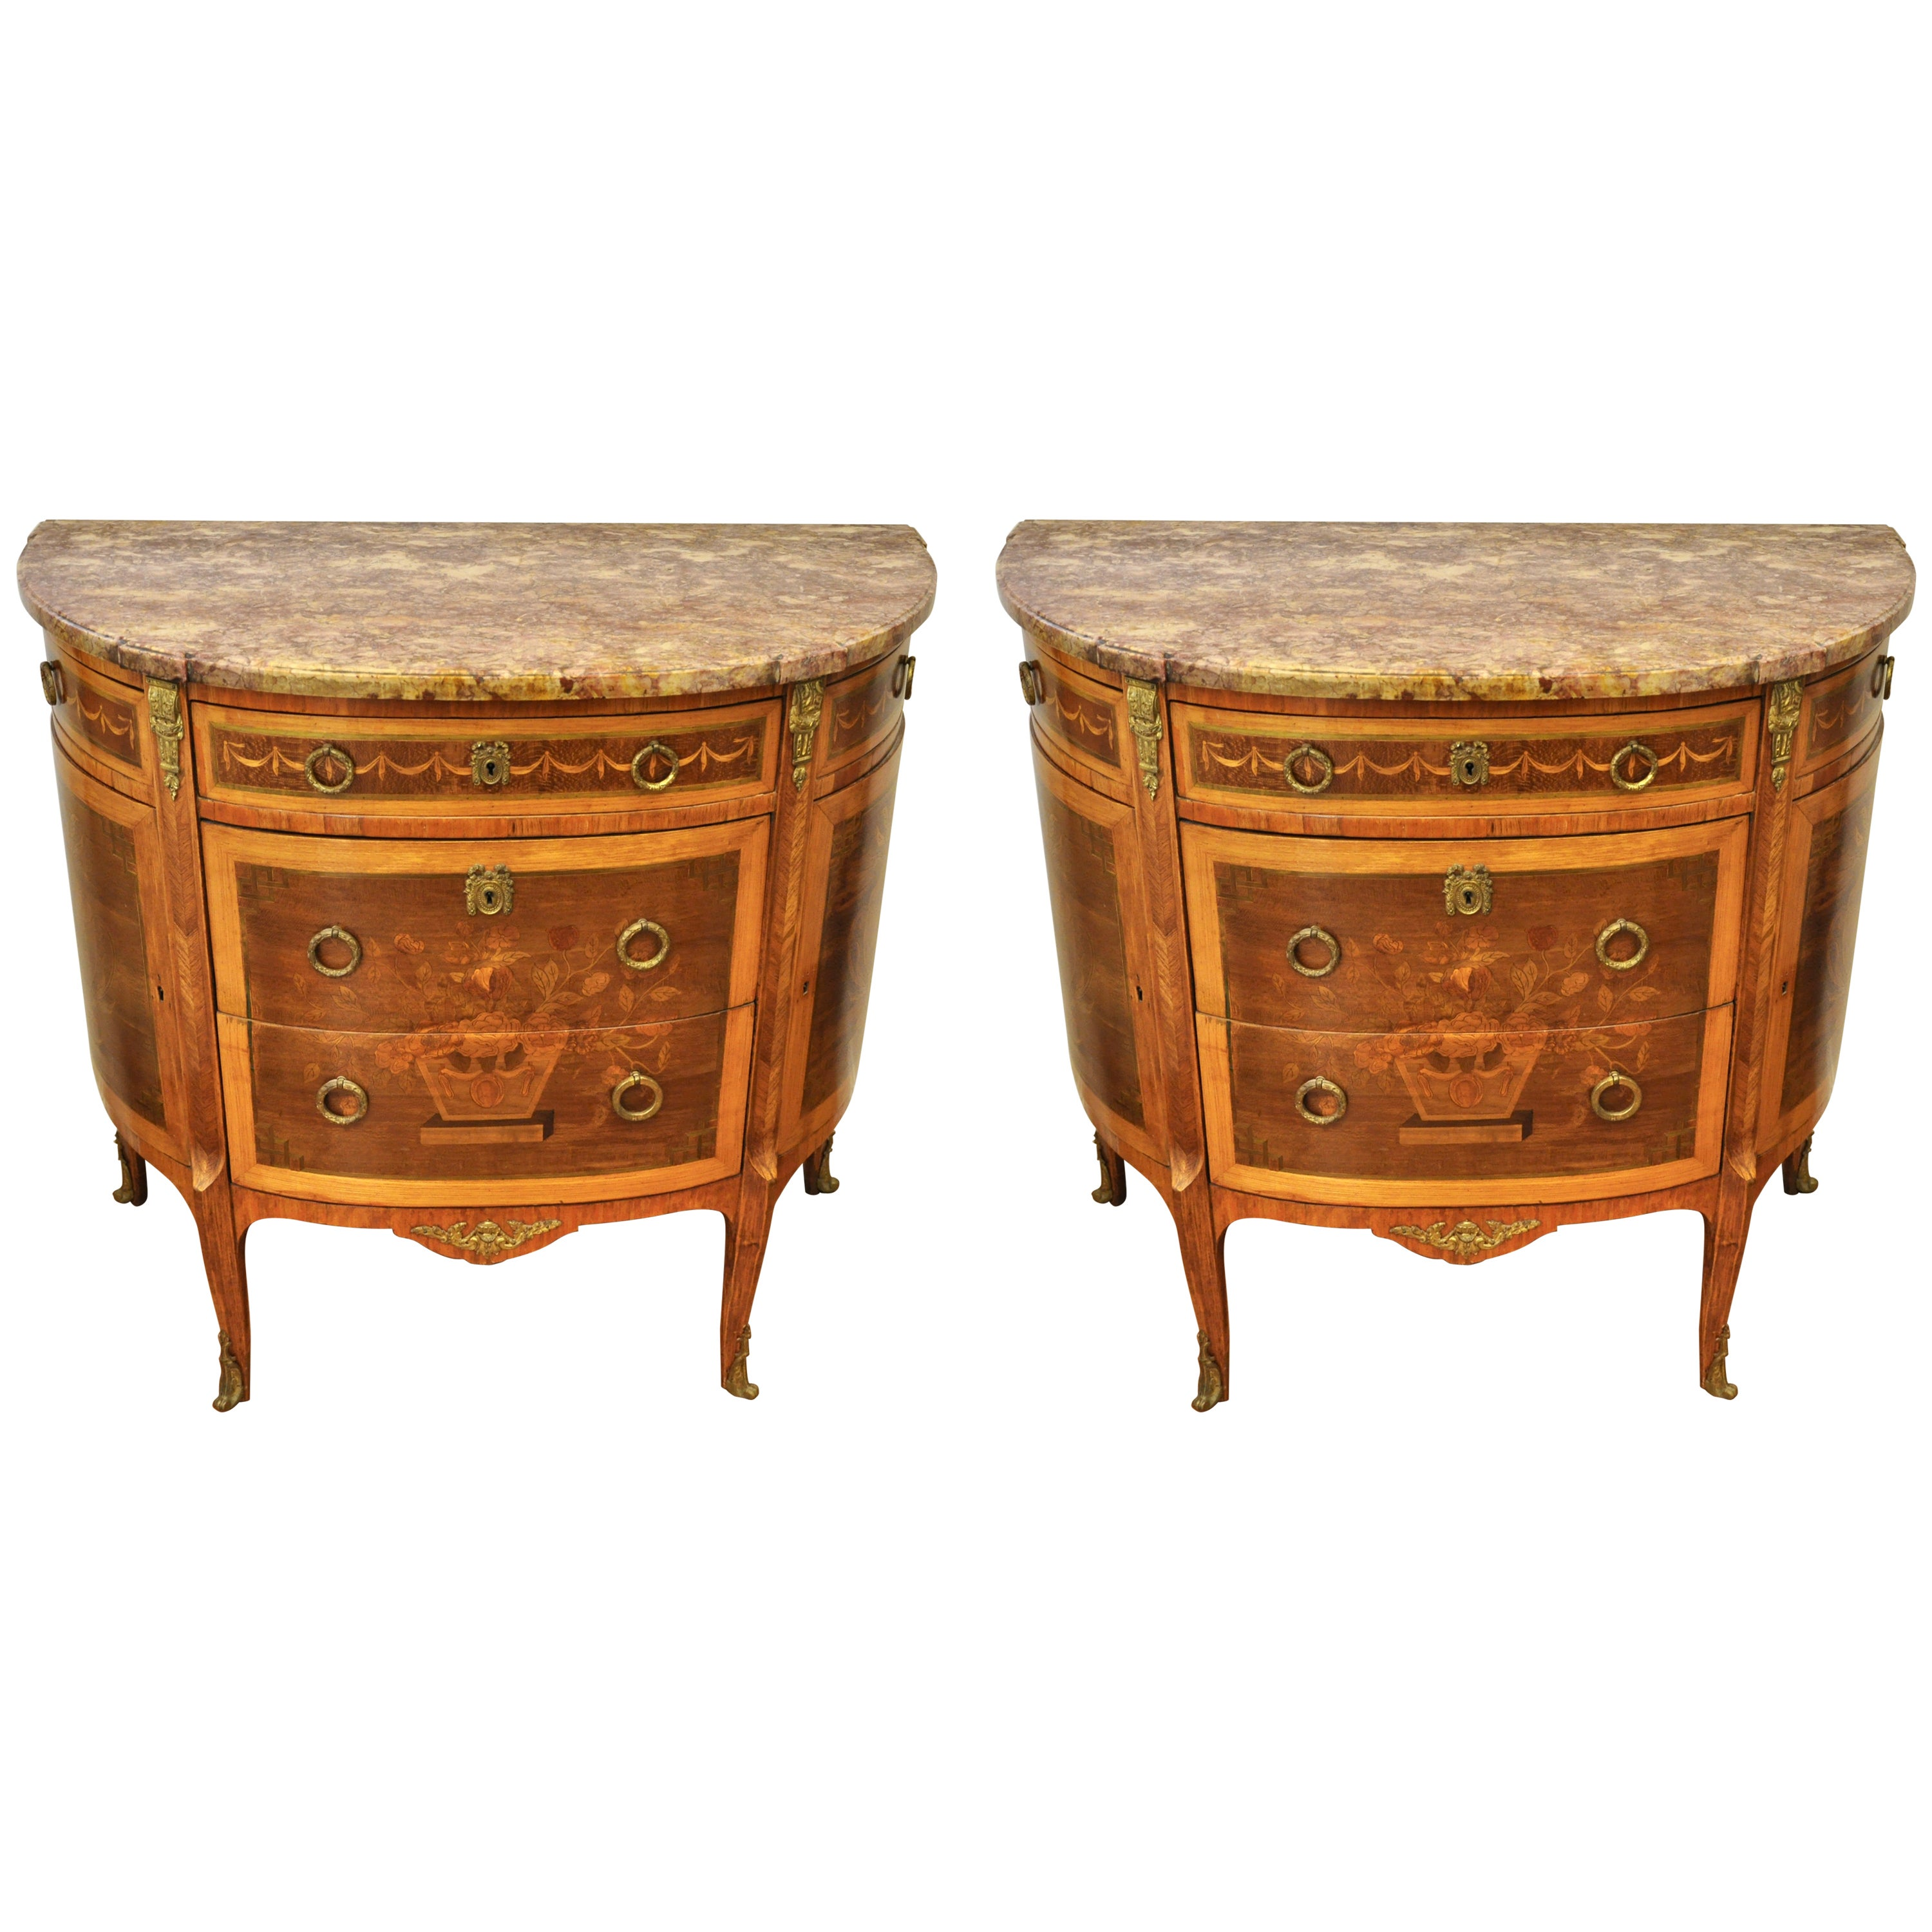 Pair of Louis XVI Style Marble-Top Marquetry Inlaid Commodes